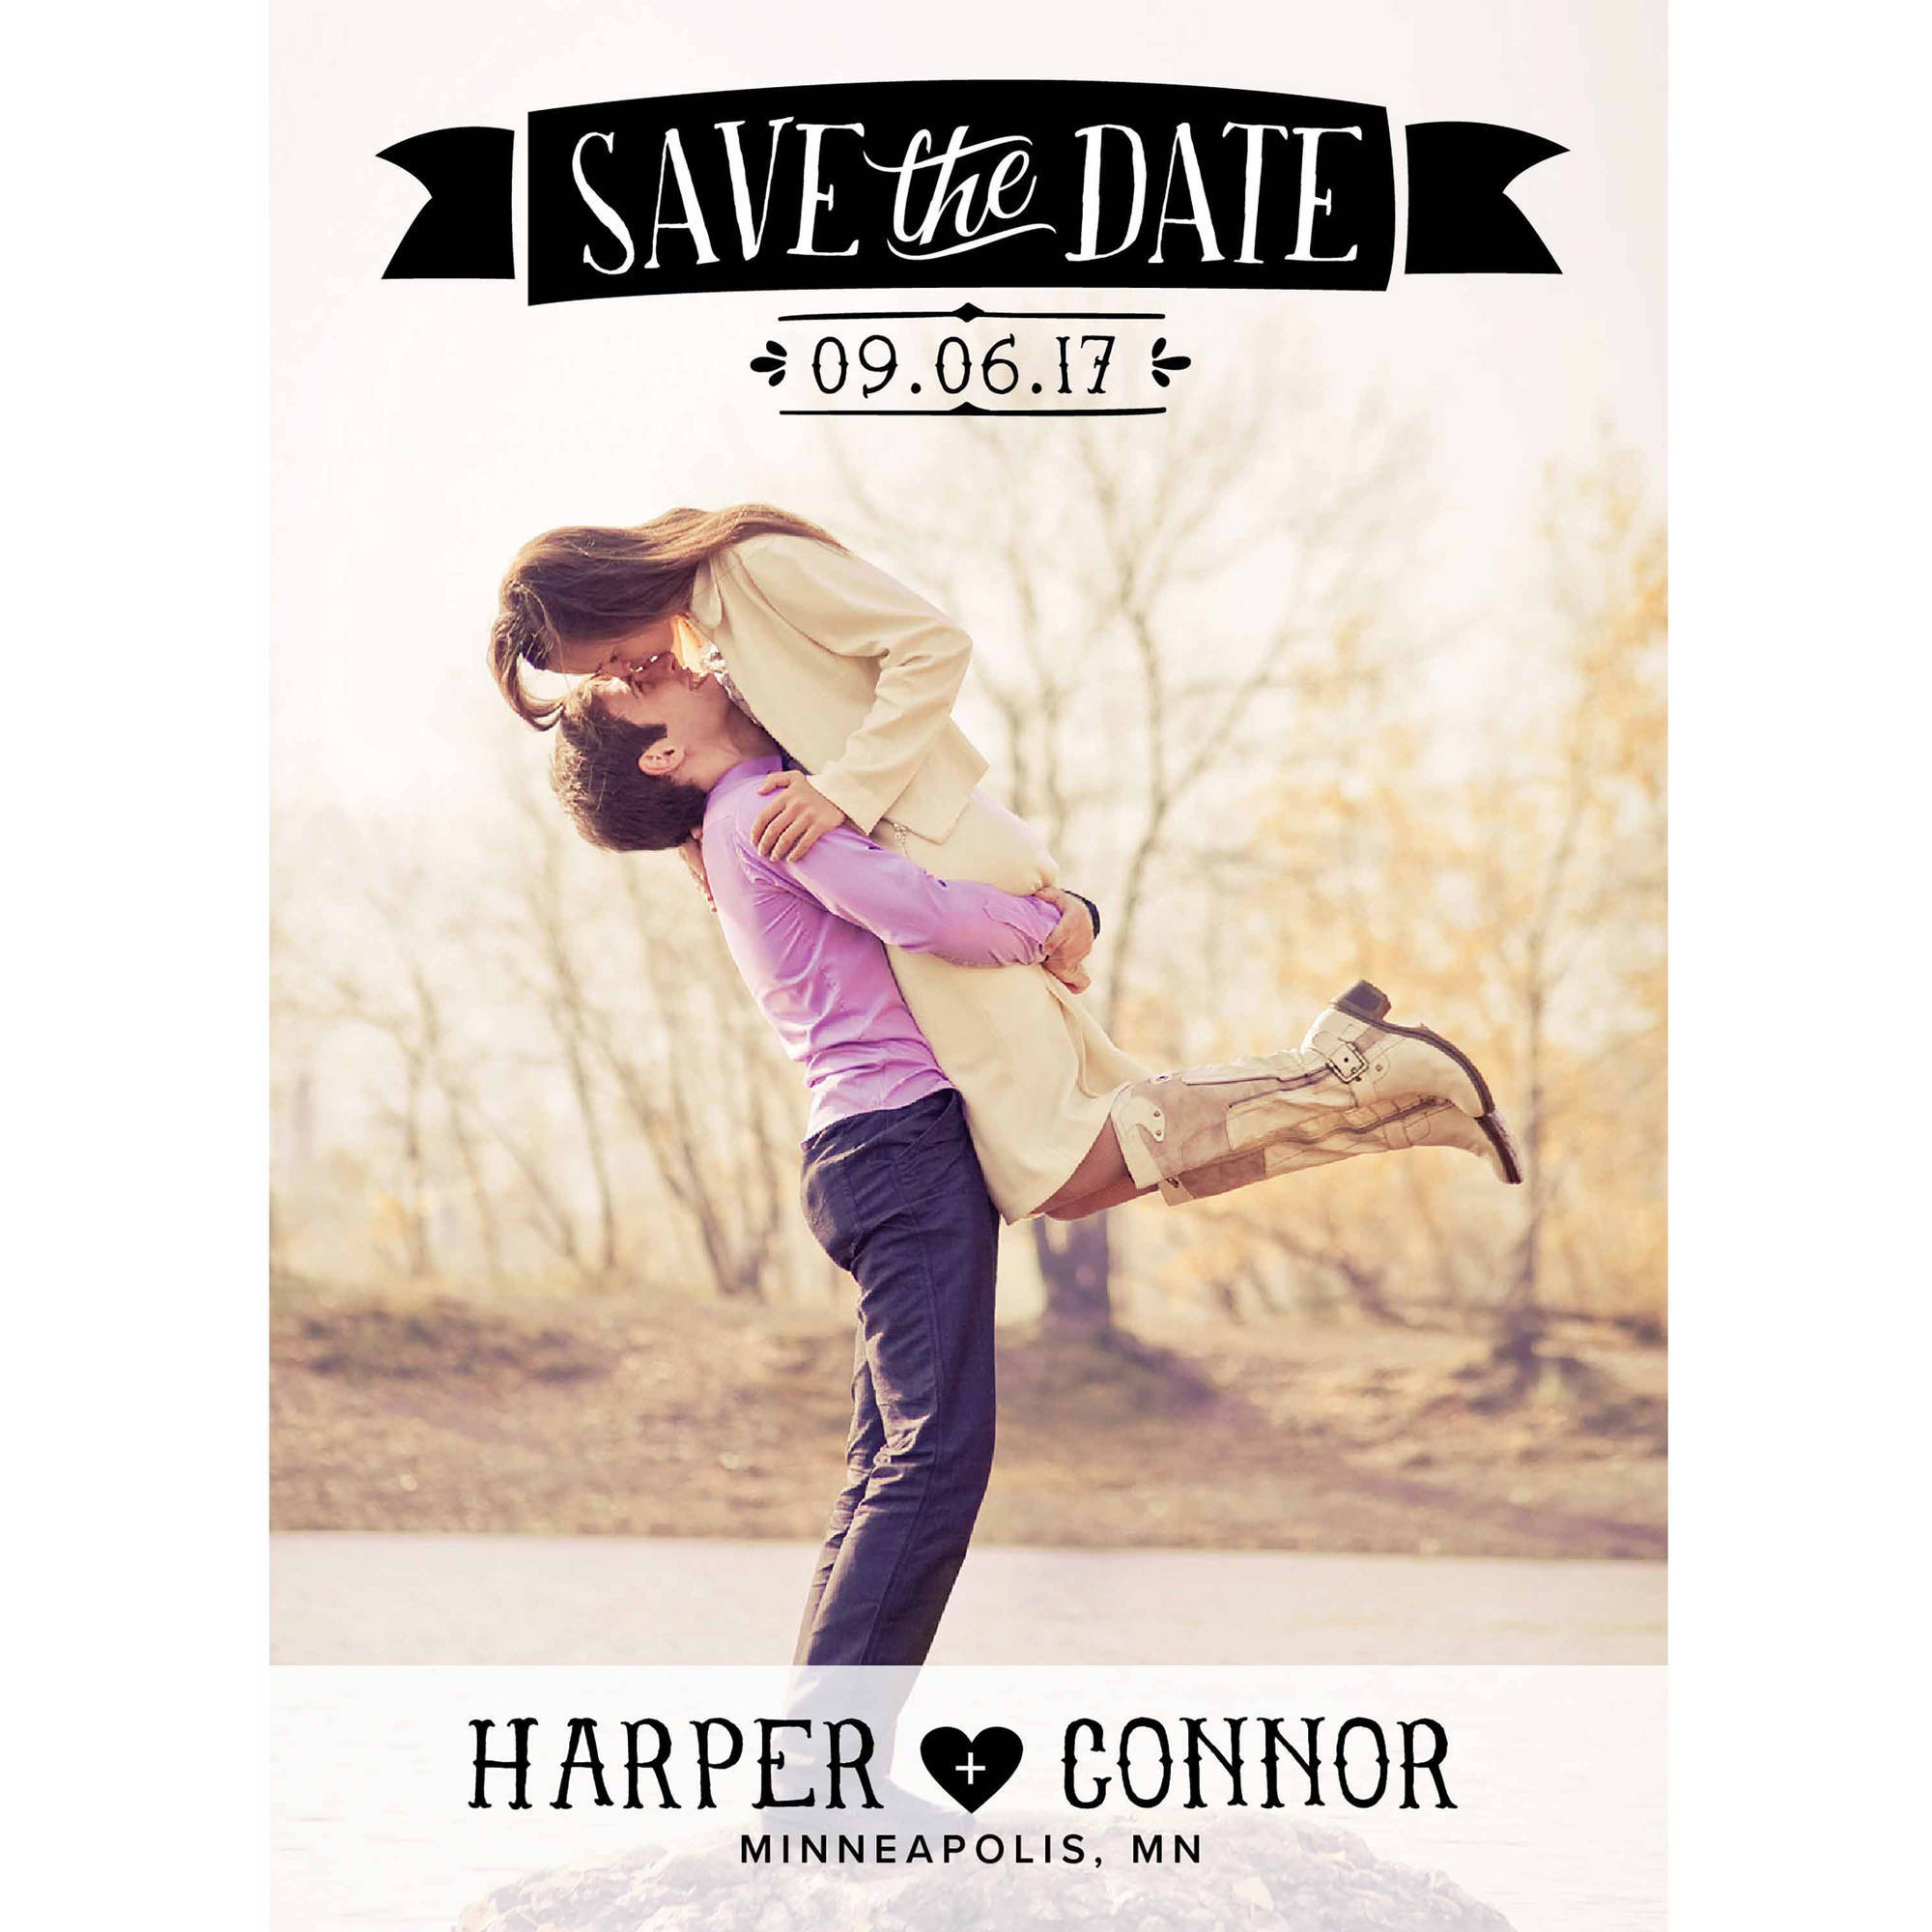 Picture Perfect Standard Save the Date